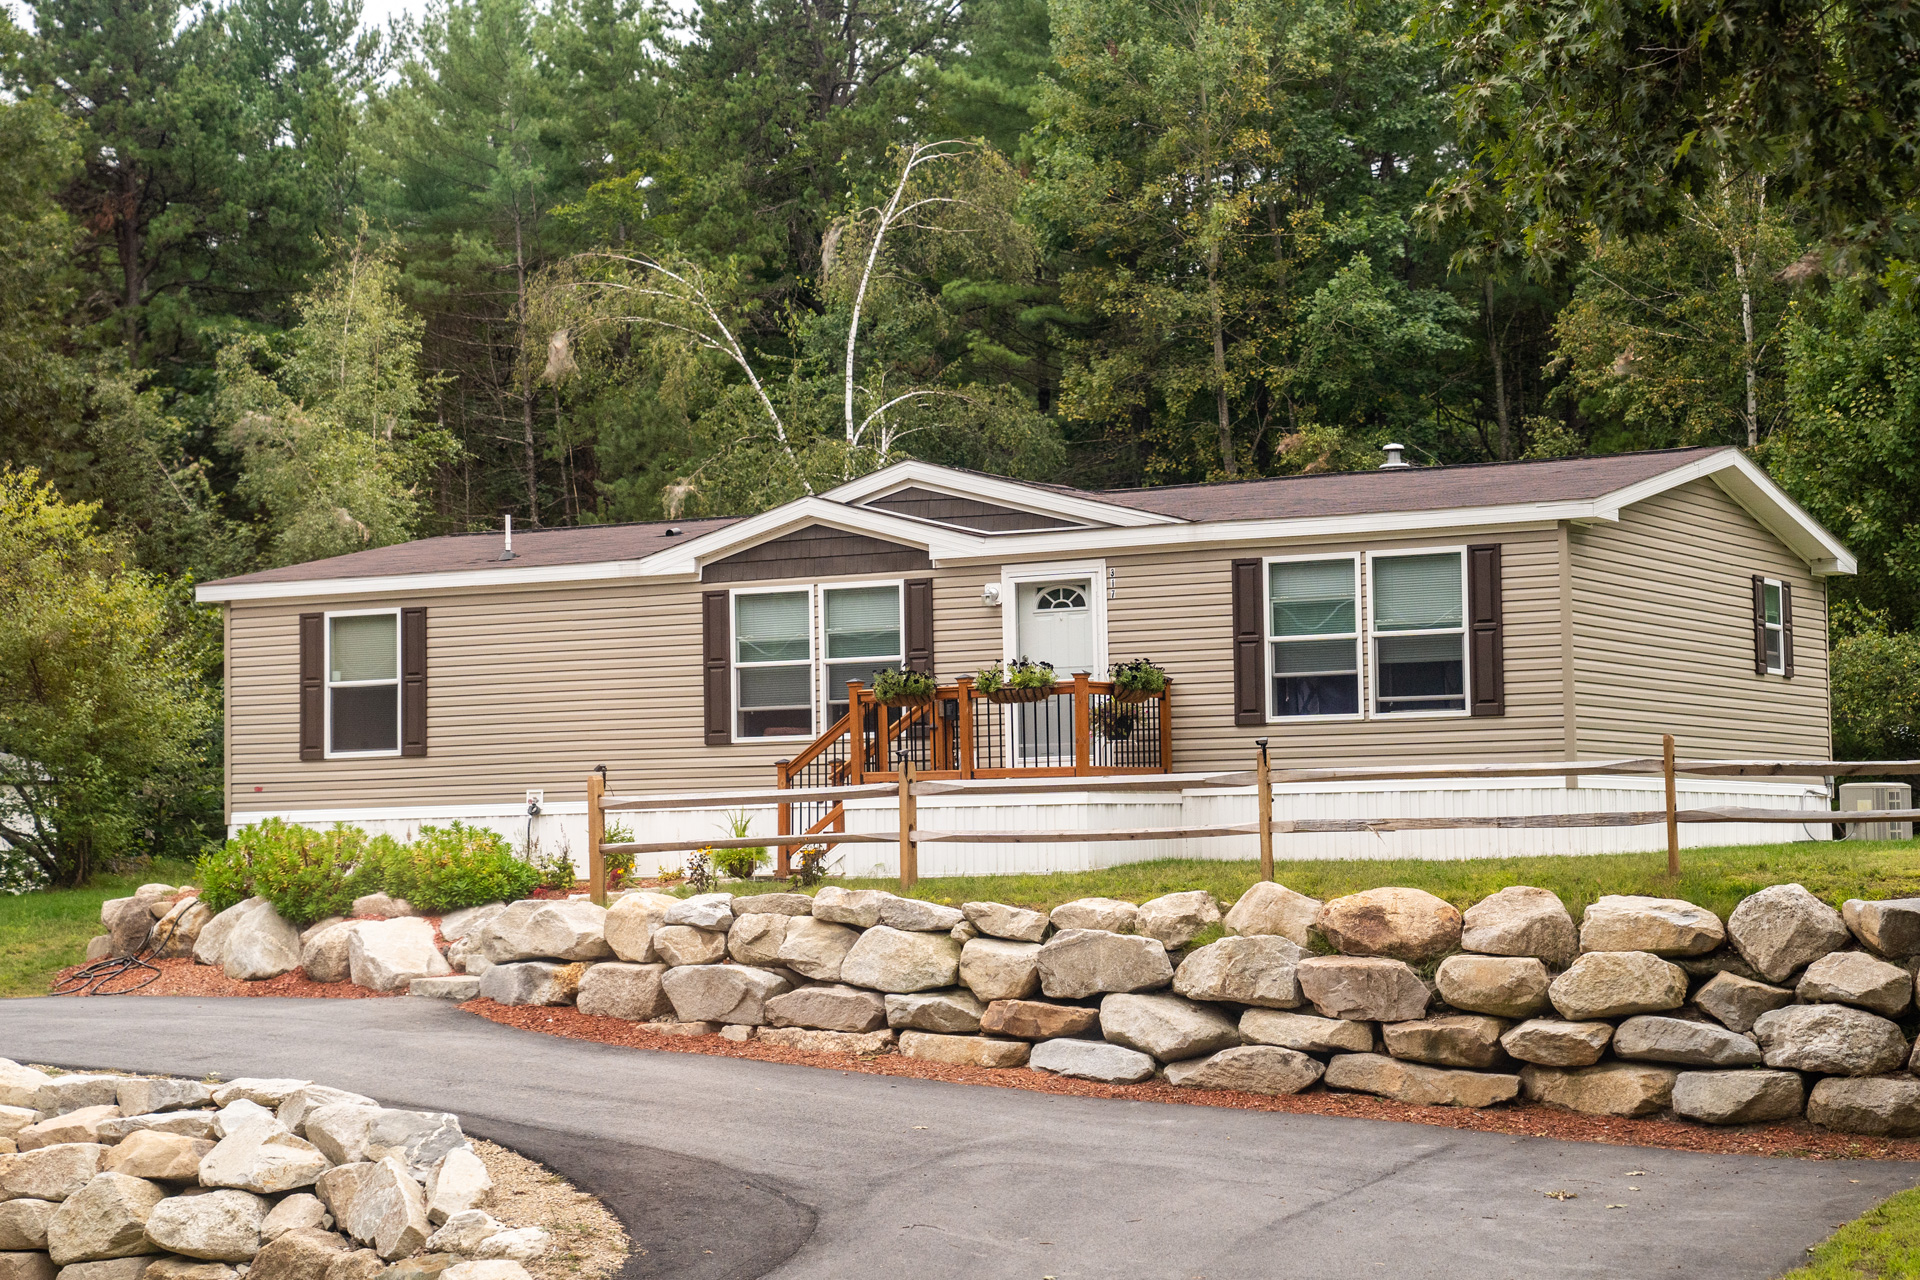 Modern manufactured home with stone wall and rail fence